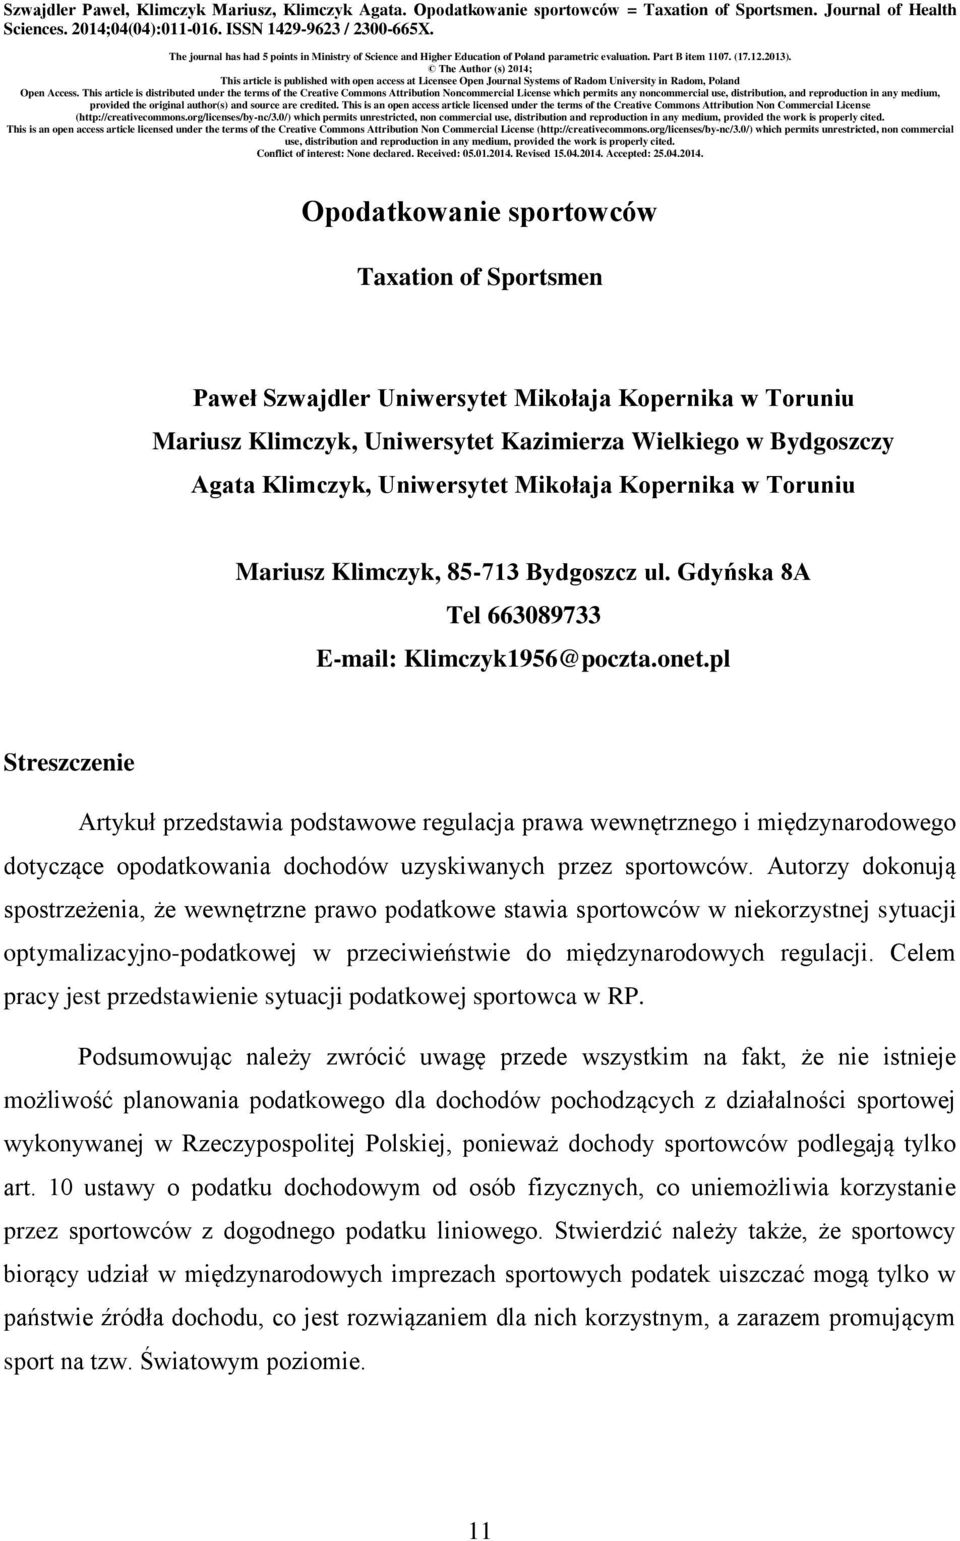 The Author (s) 2014; This article is published with open access at Licensee Open Journal Systems of Radom University in Radom, Poland Open Access.